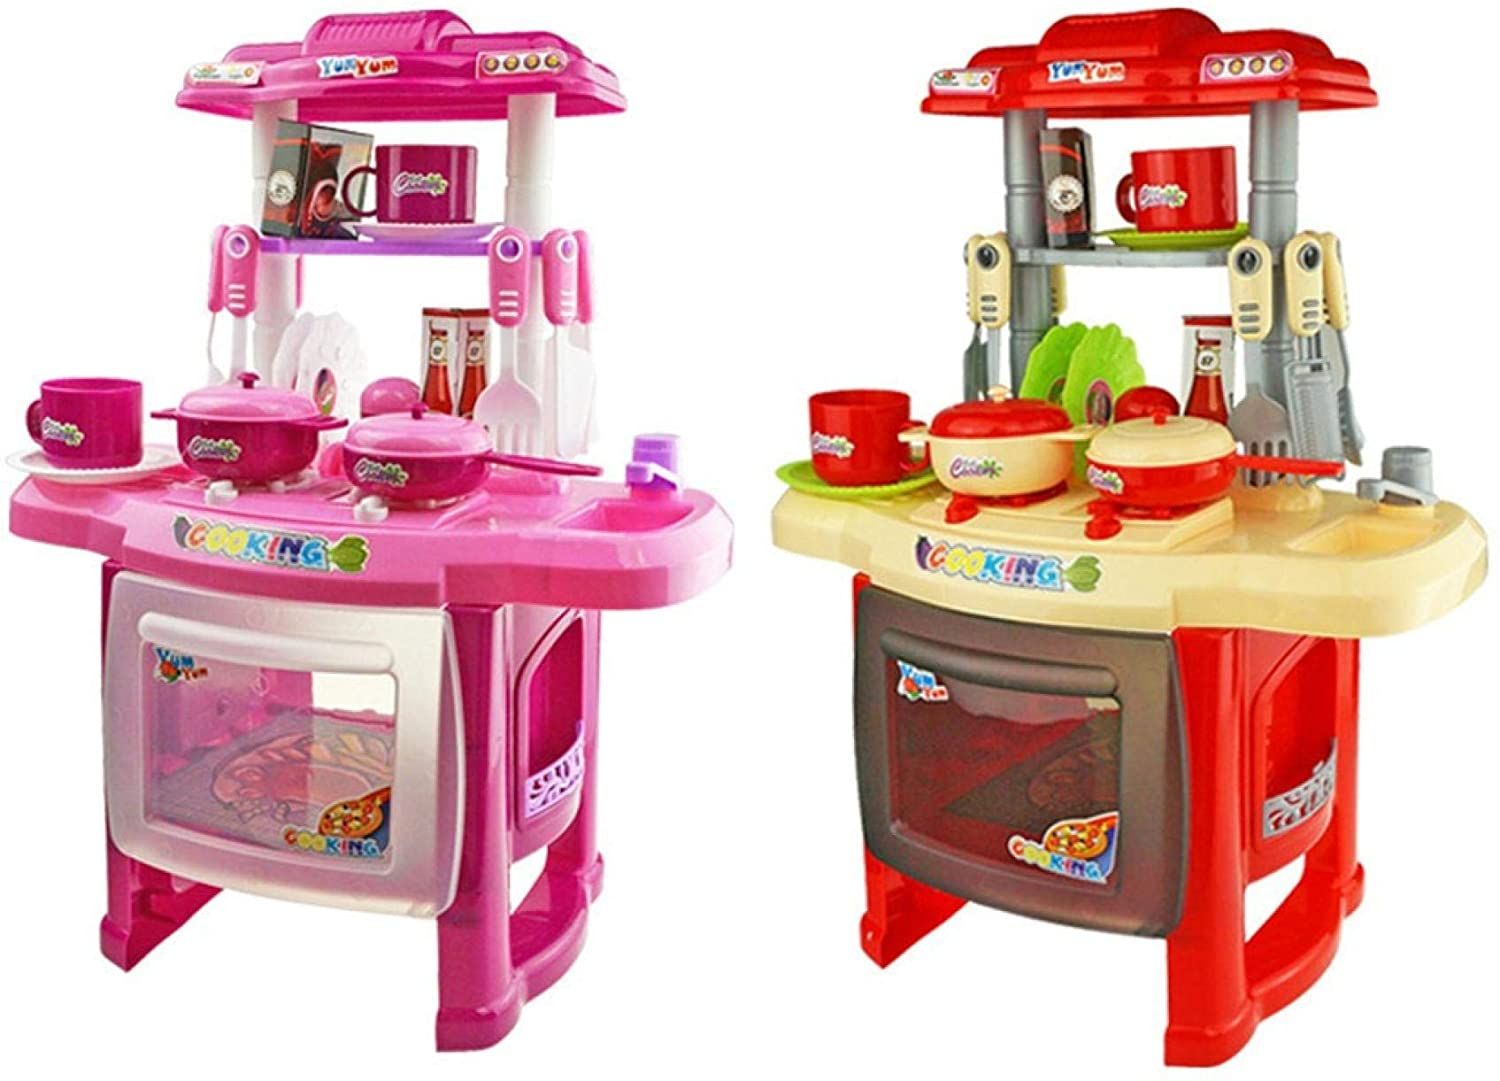 RONSE 2020 New Kids Kitchen Sets for Girls, Kitchen Playset with Realistic Lights & Sounds, Dessert Shelf Toy & Other Kitchen Accessories Set for Girls Boys